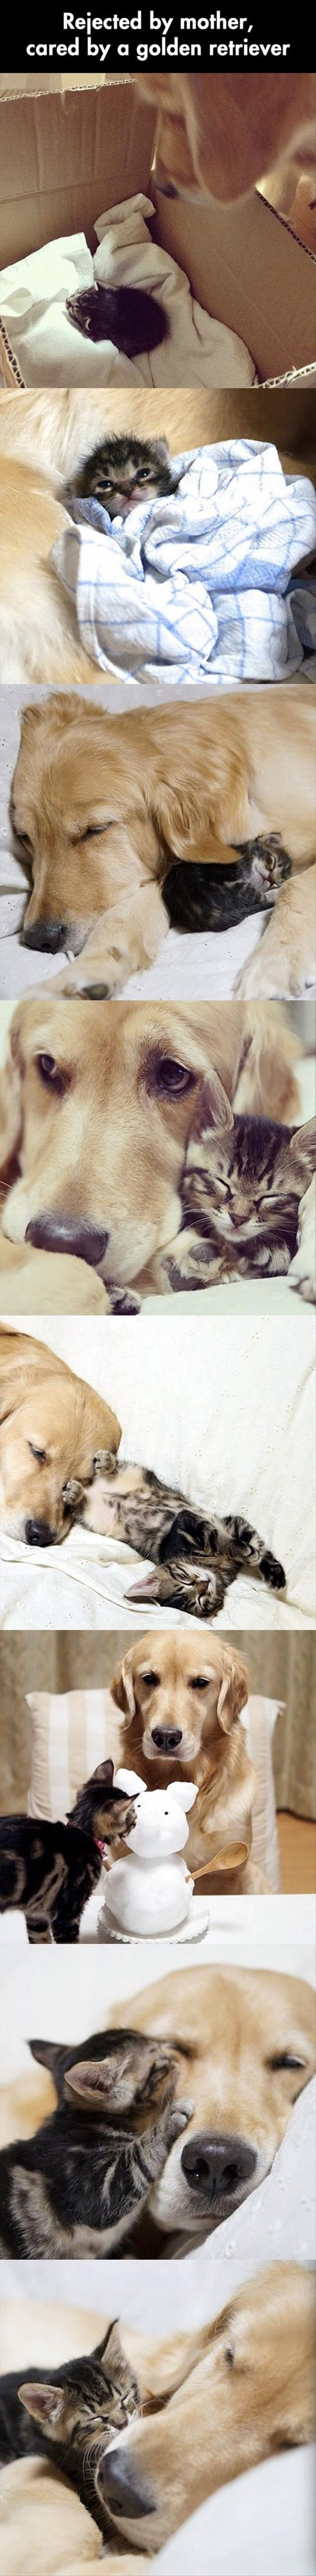 #Cat rejected by its #mother, cared for by a golden  Awww so cute -